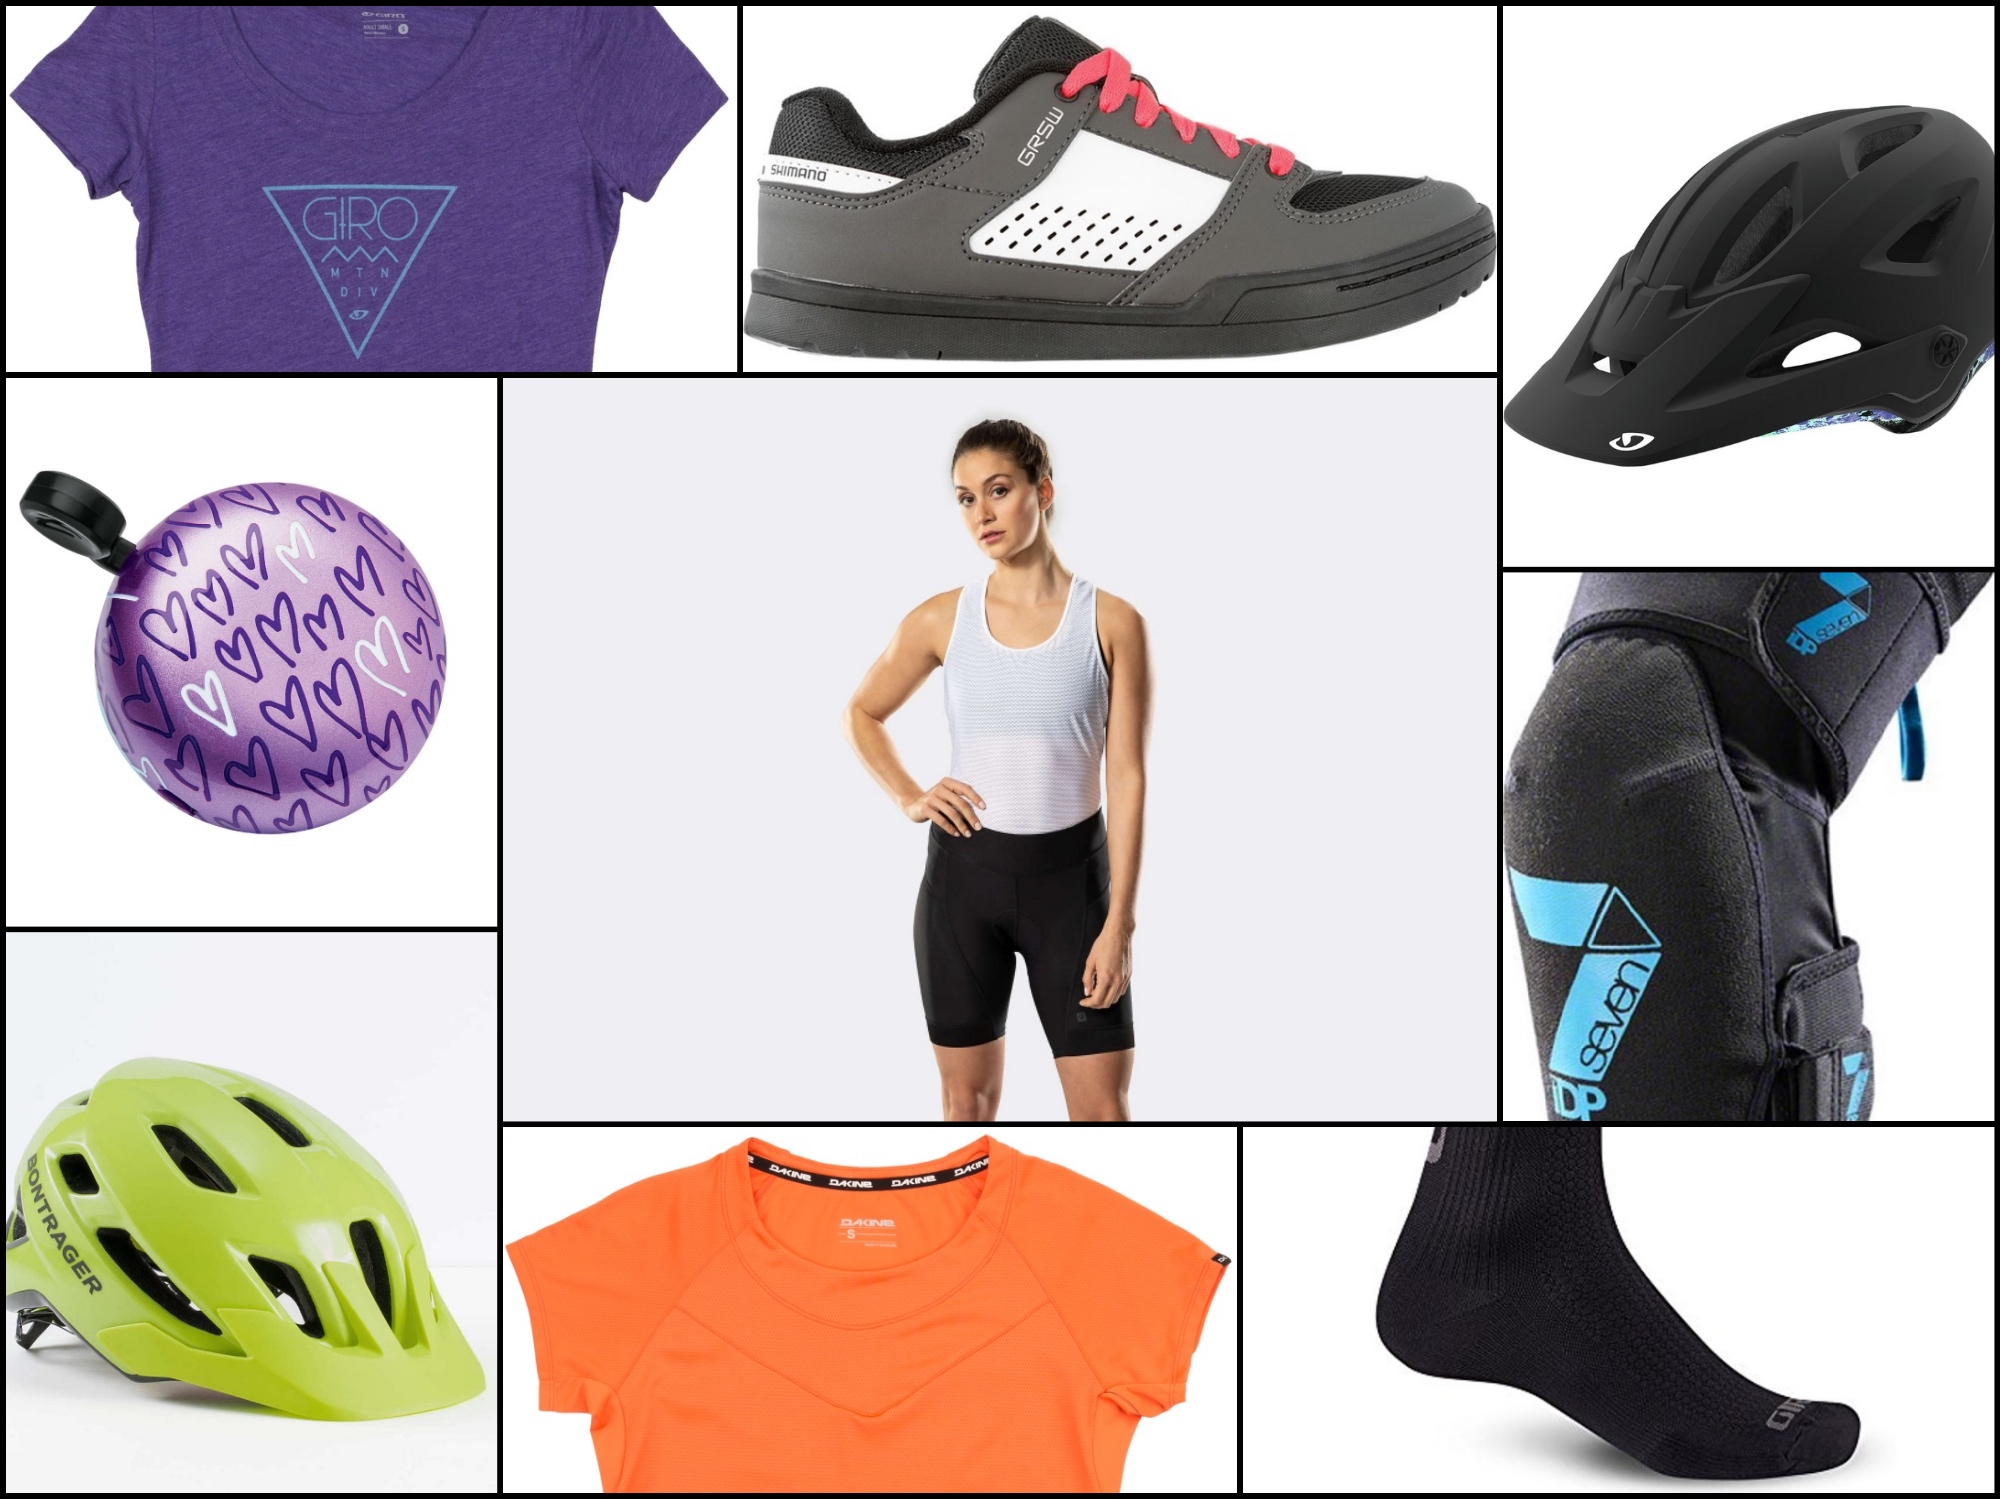 Mother's Day Deals for Mountain Bikers